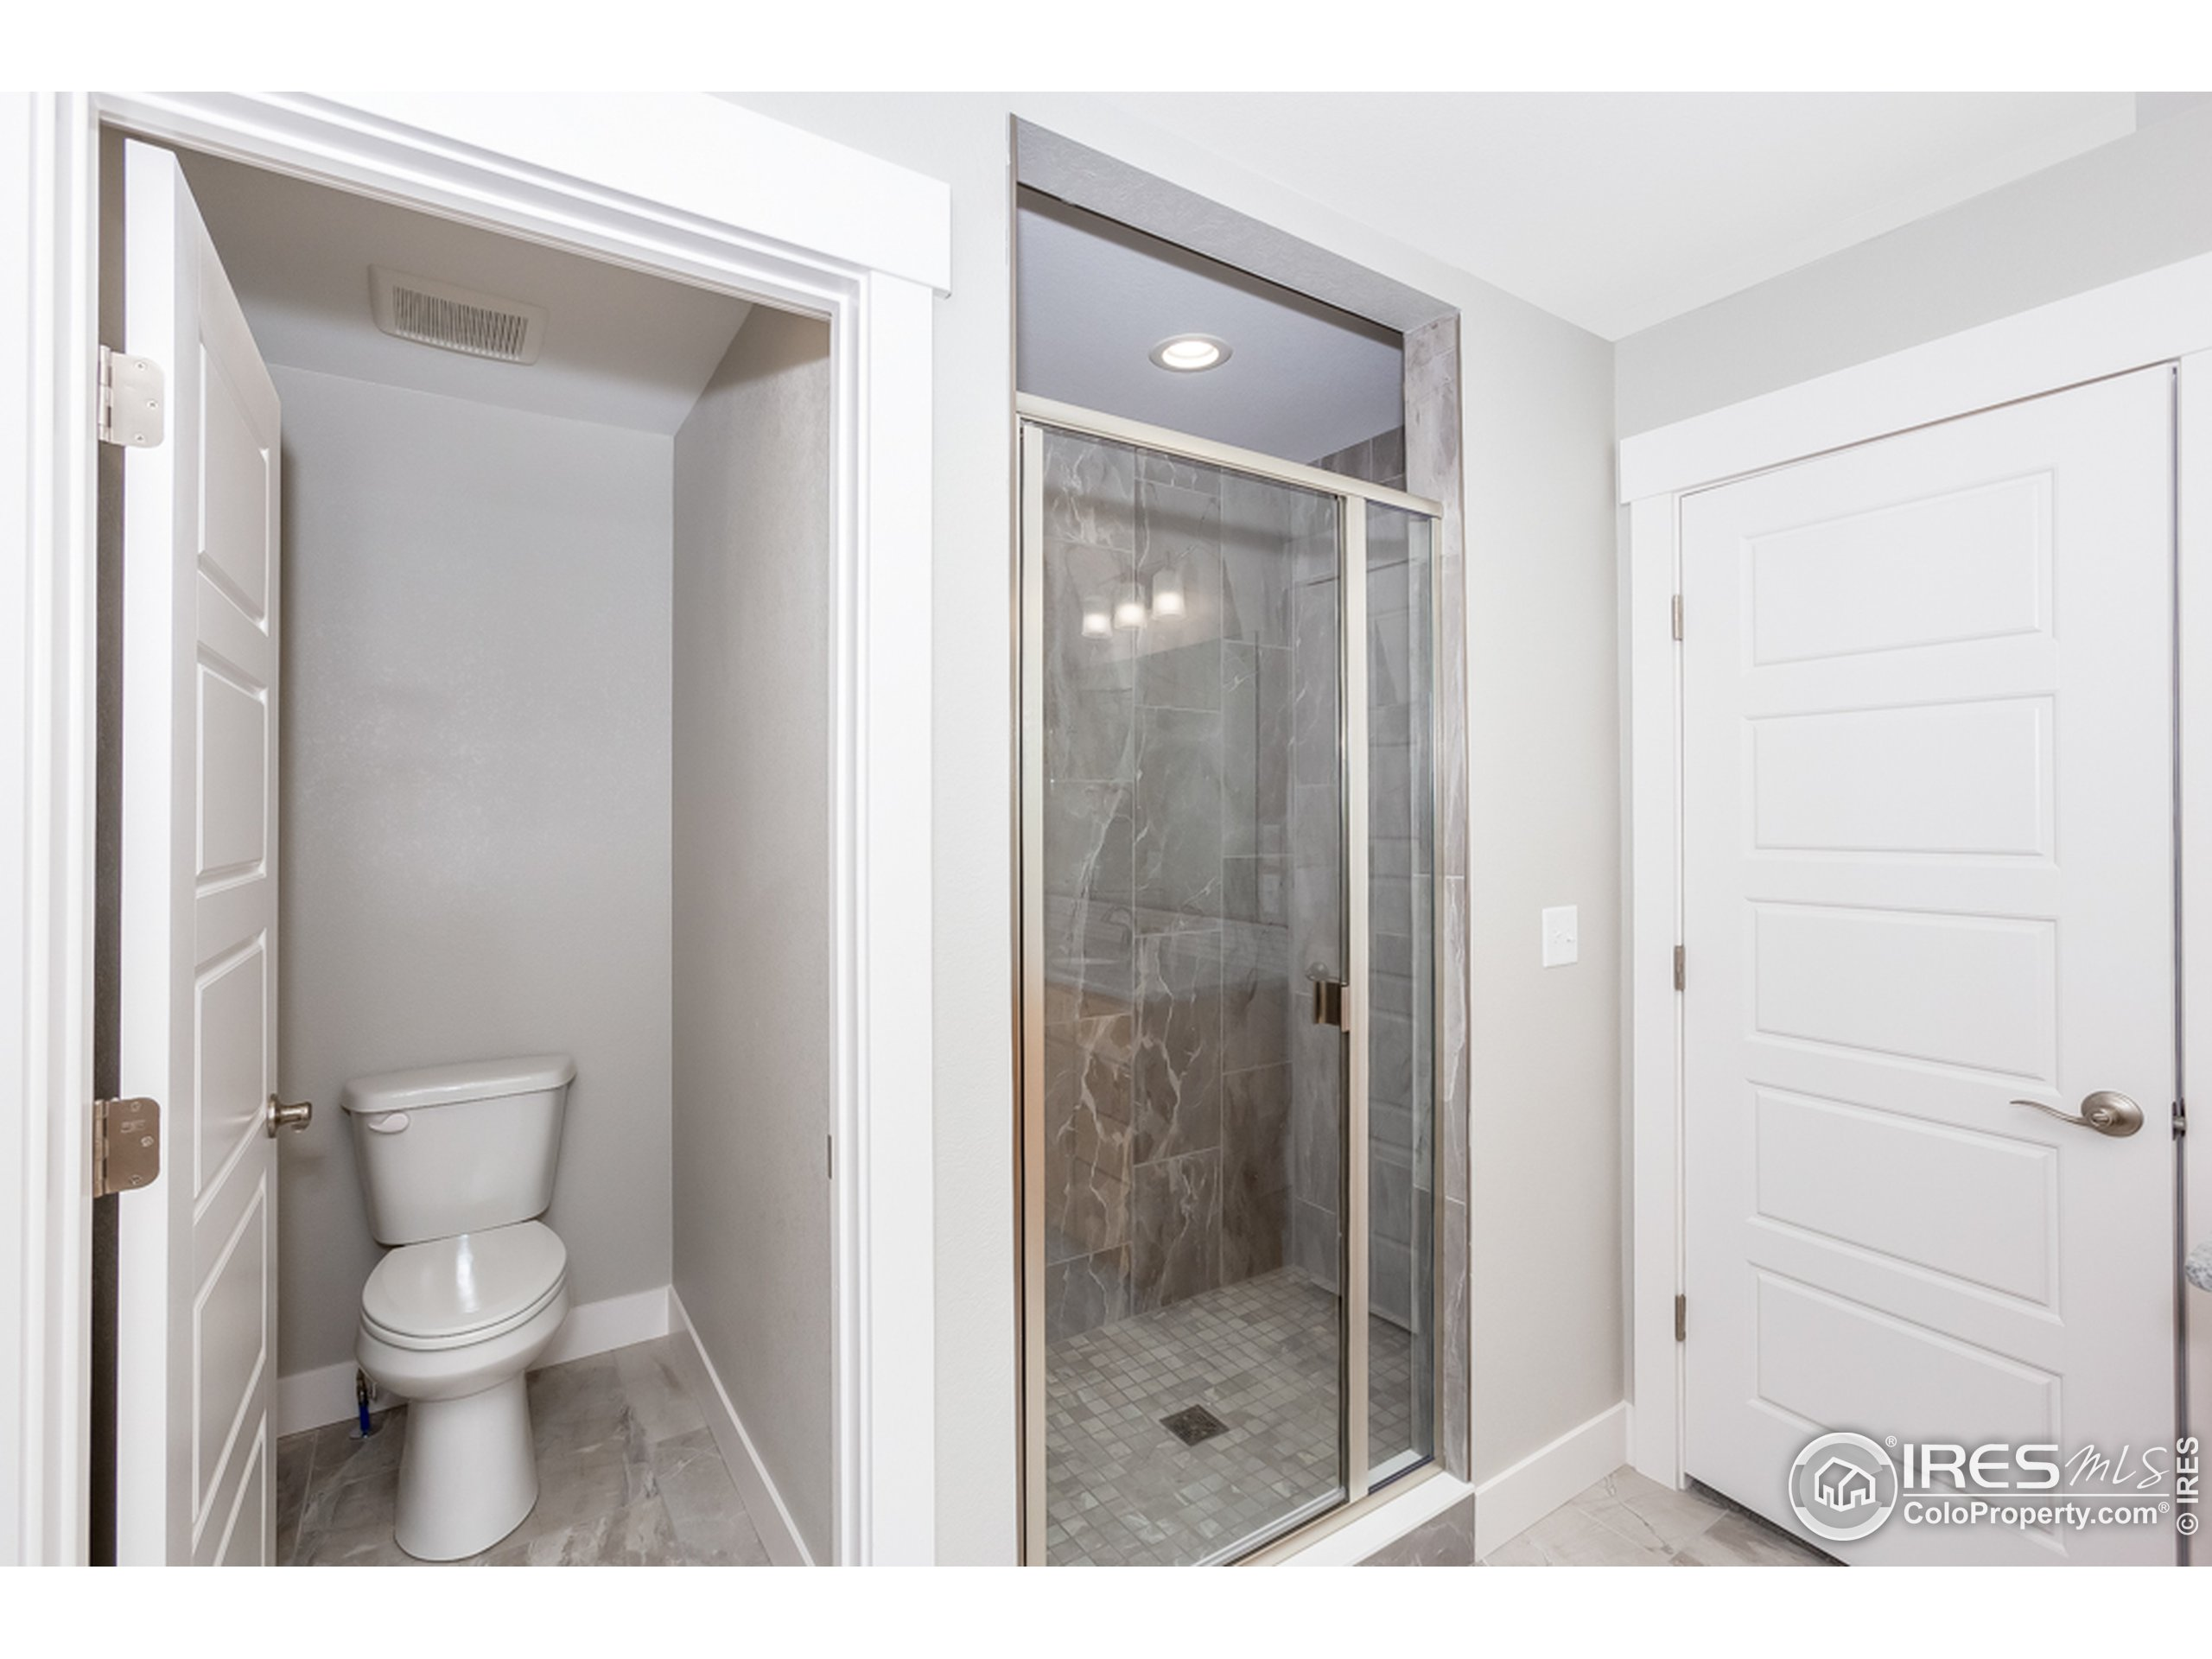 A private water closet and stall shower